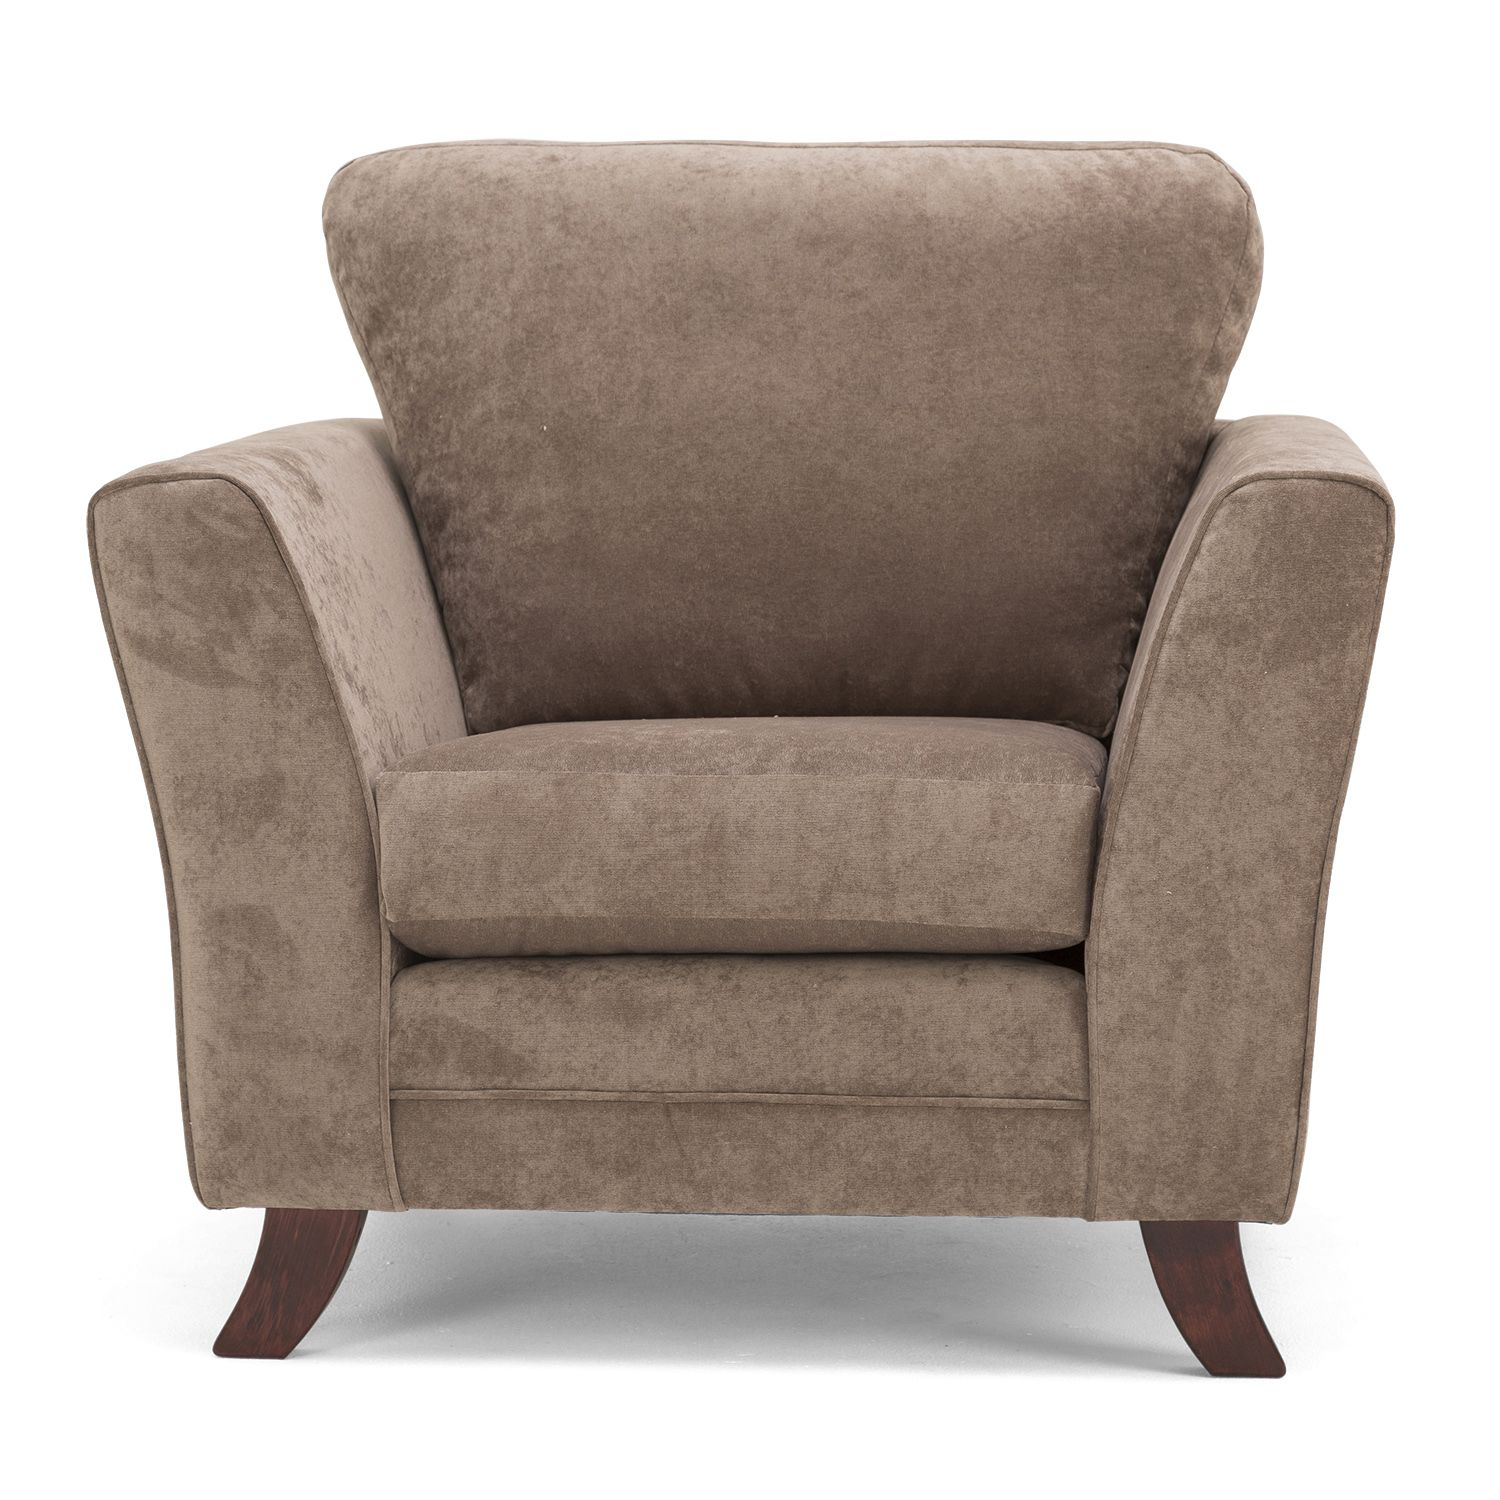 uk armchairs | armchairs | armchairs for sale | armchairs ...